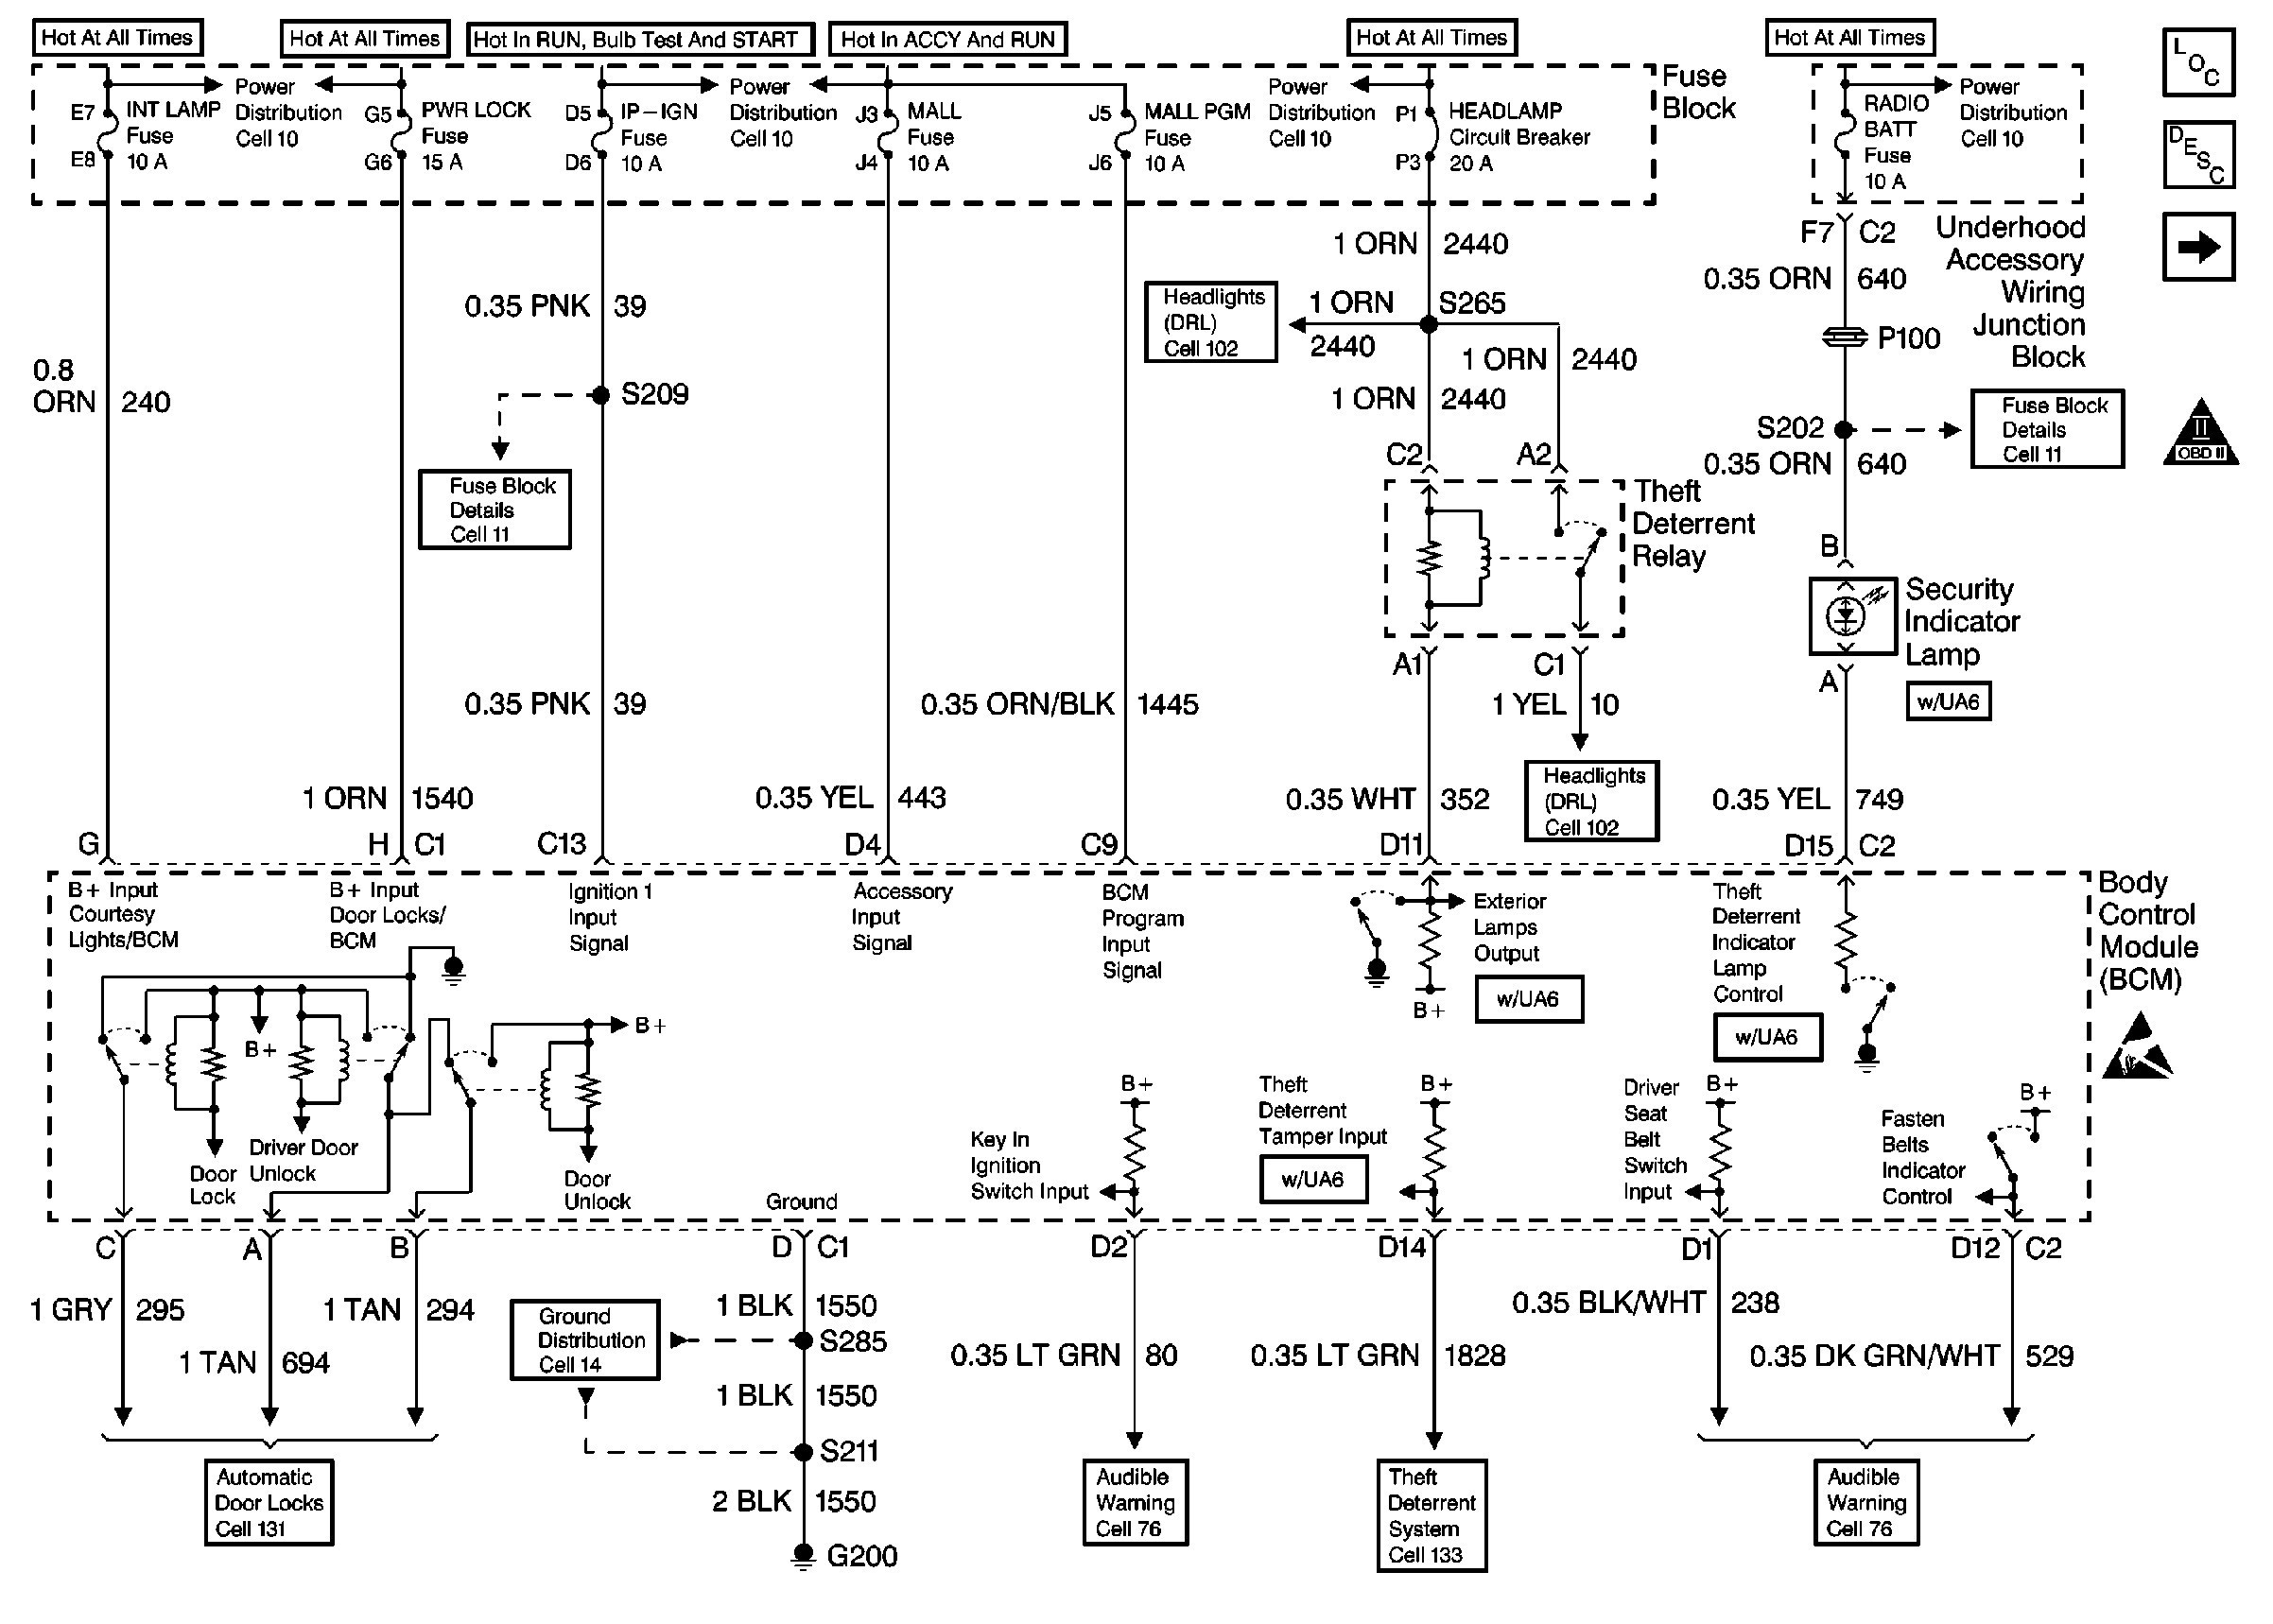 [TVPR_3874]  DIAGRAM] Pontiac Grand Am Ac Wiring Diagram FULL Version HD Quality Wiring  Diagram - BUTTERFLYDIAGRAMS.K-DANSE.FR | 97 Pontiac Grand Am Pcm Wiring |  | Database diagramming tool - K-danse.fr